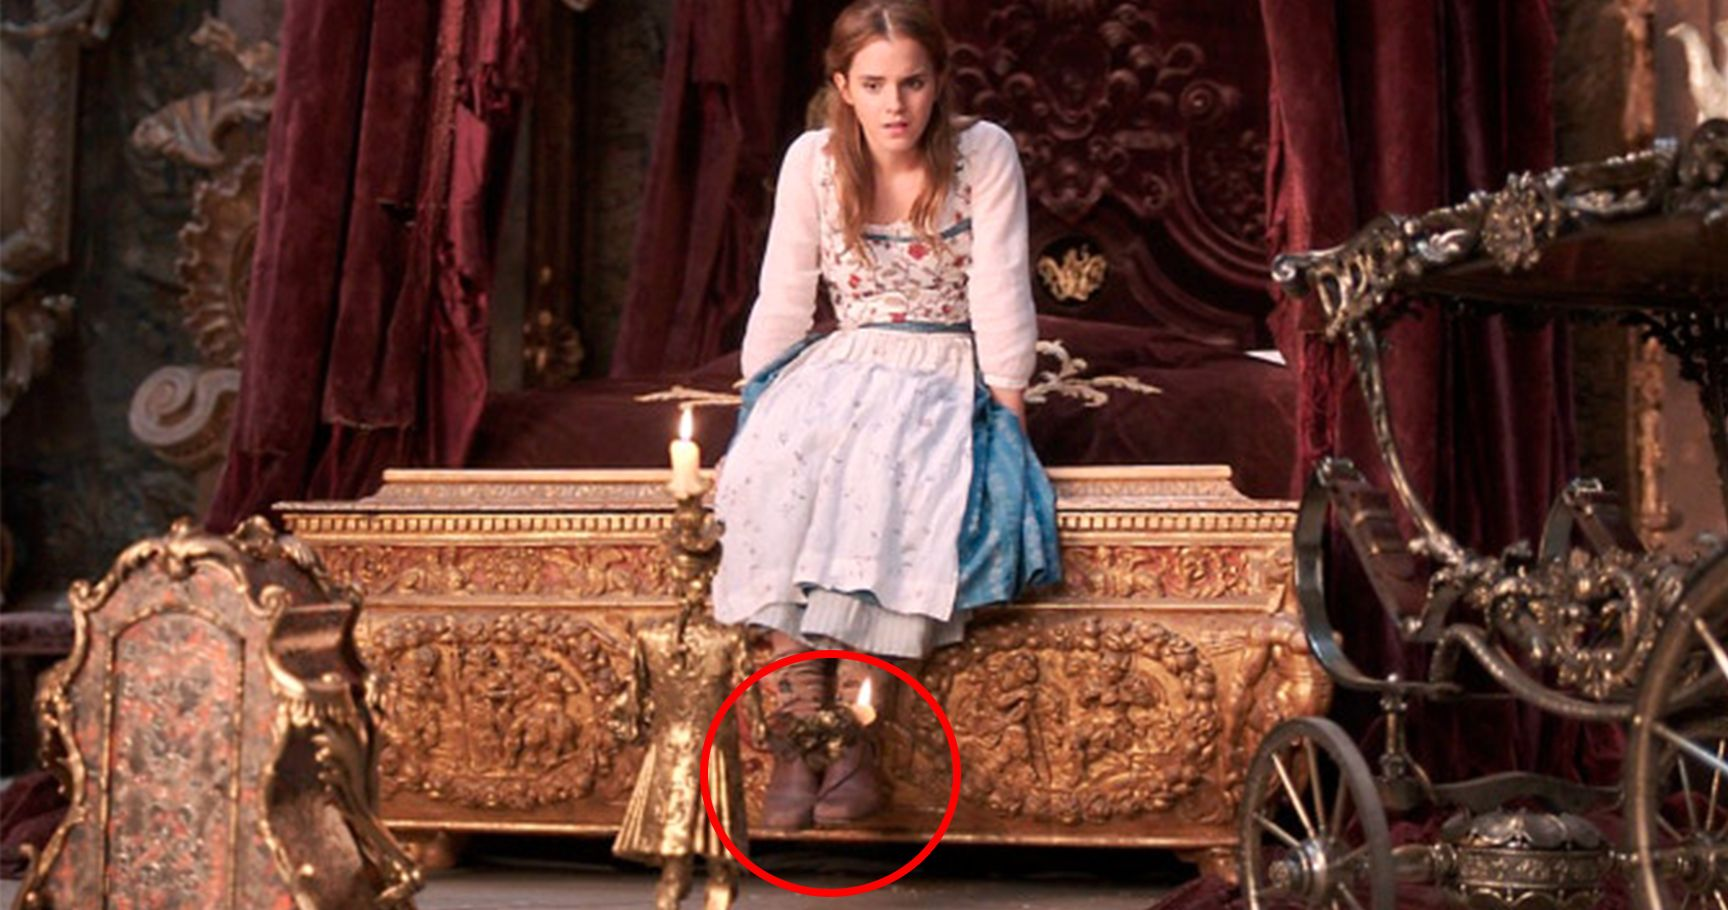 15 Moments From 'Beauty And The Beast' We Were So Down For